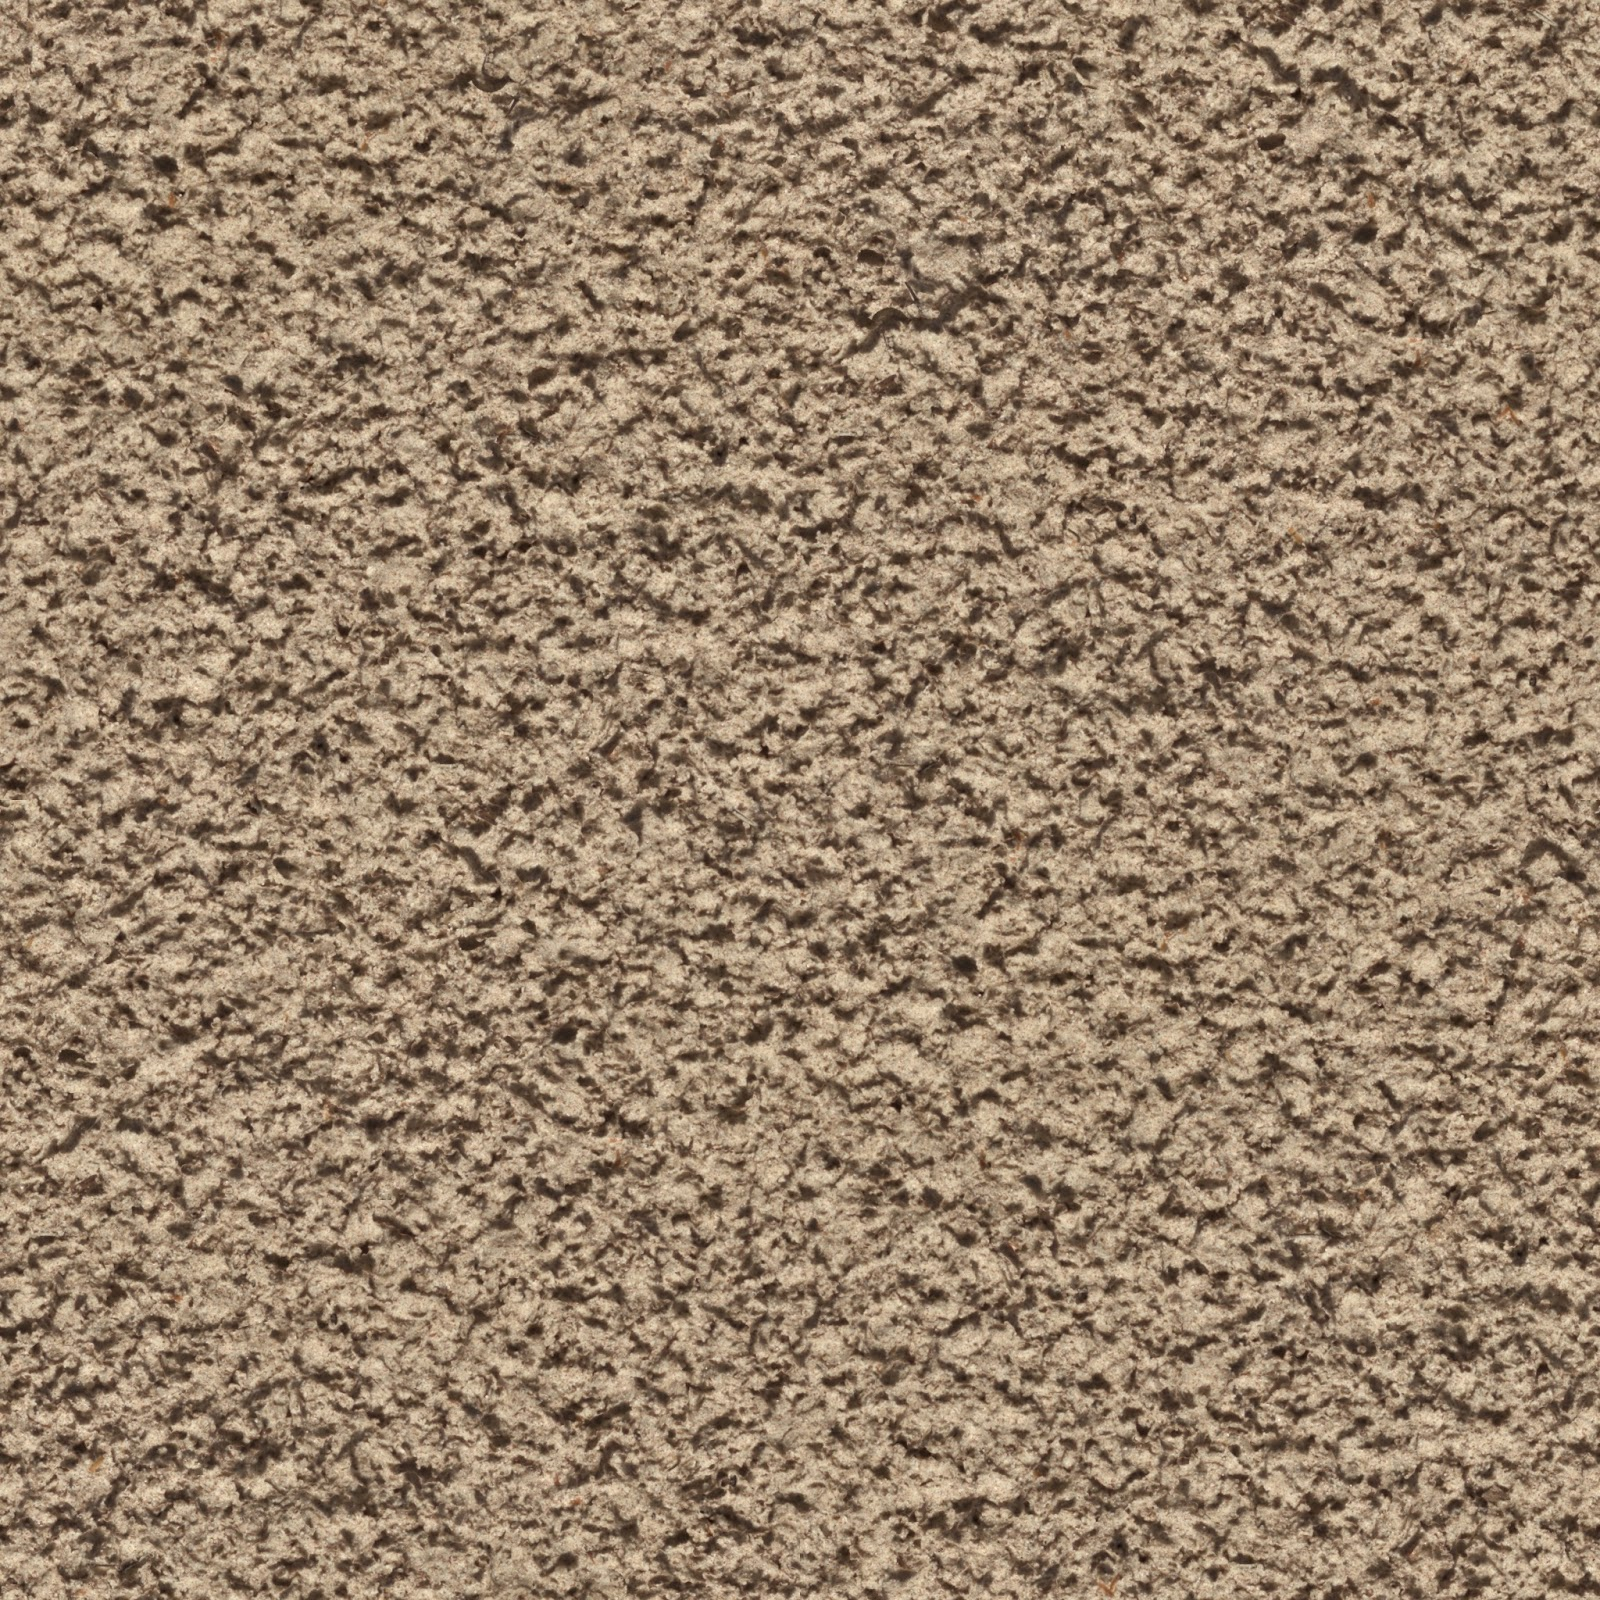 High resolution seamless textures august 2014 for Soil texture